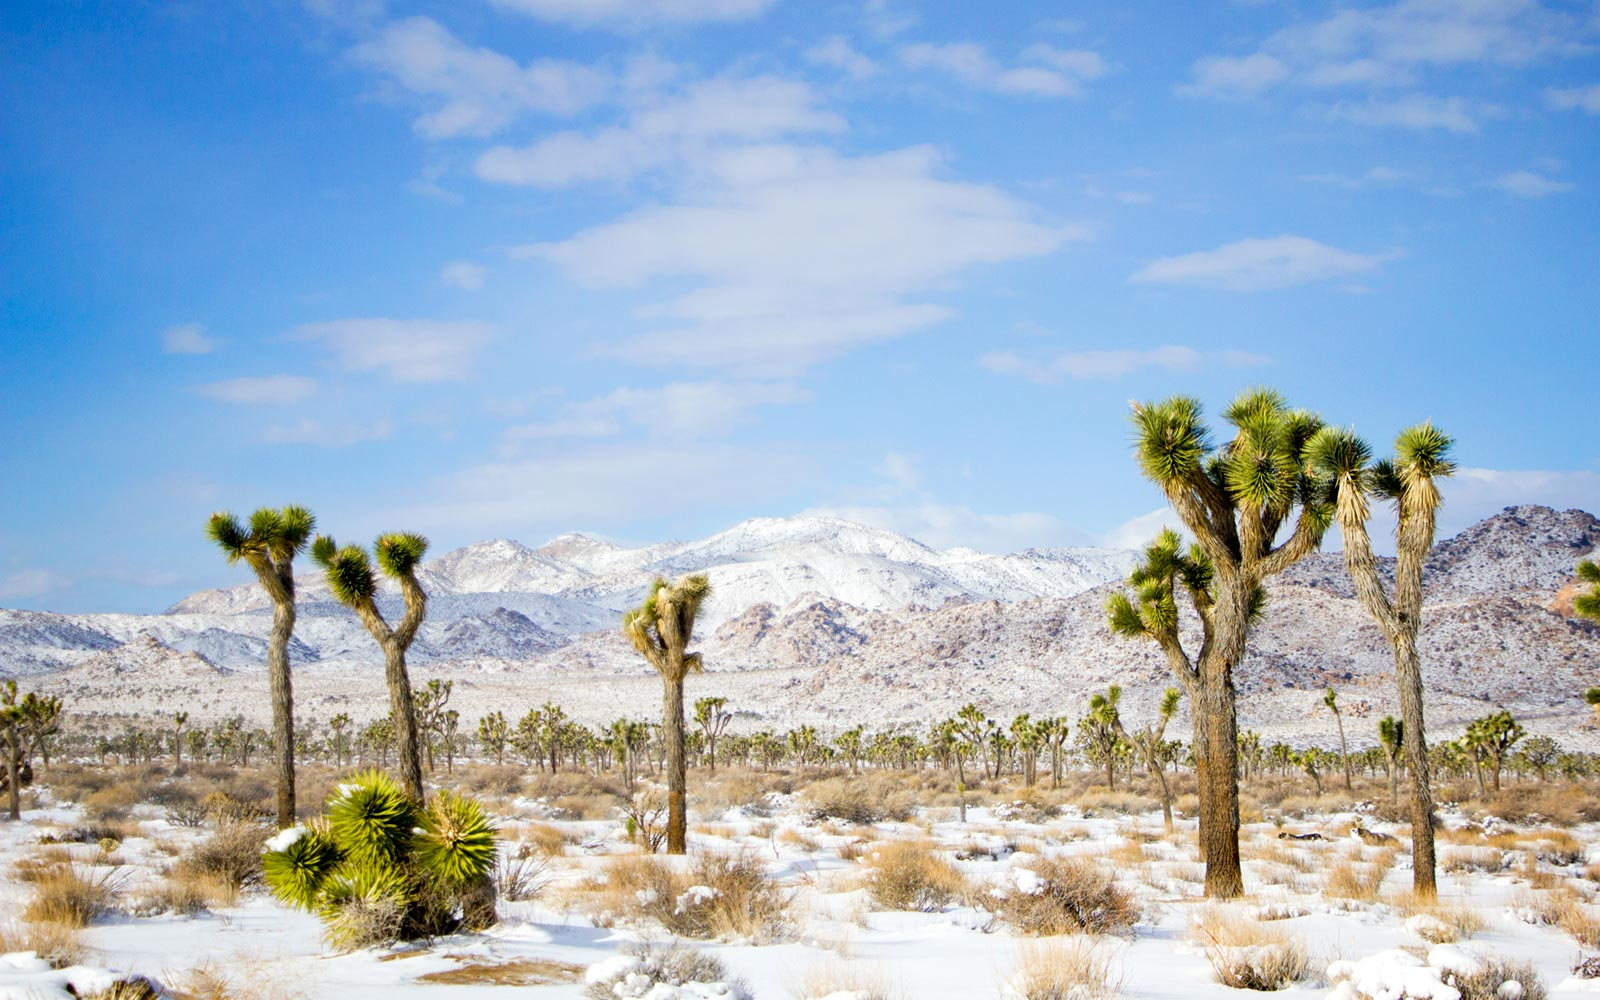 6 Gorgeous Desert Destinations for Soaking Up the Sun This Winter